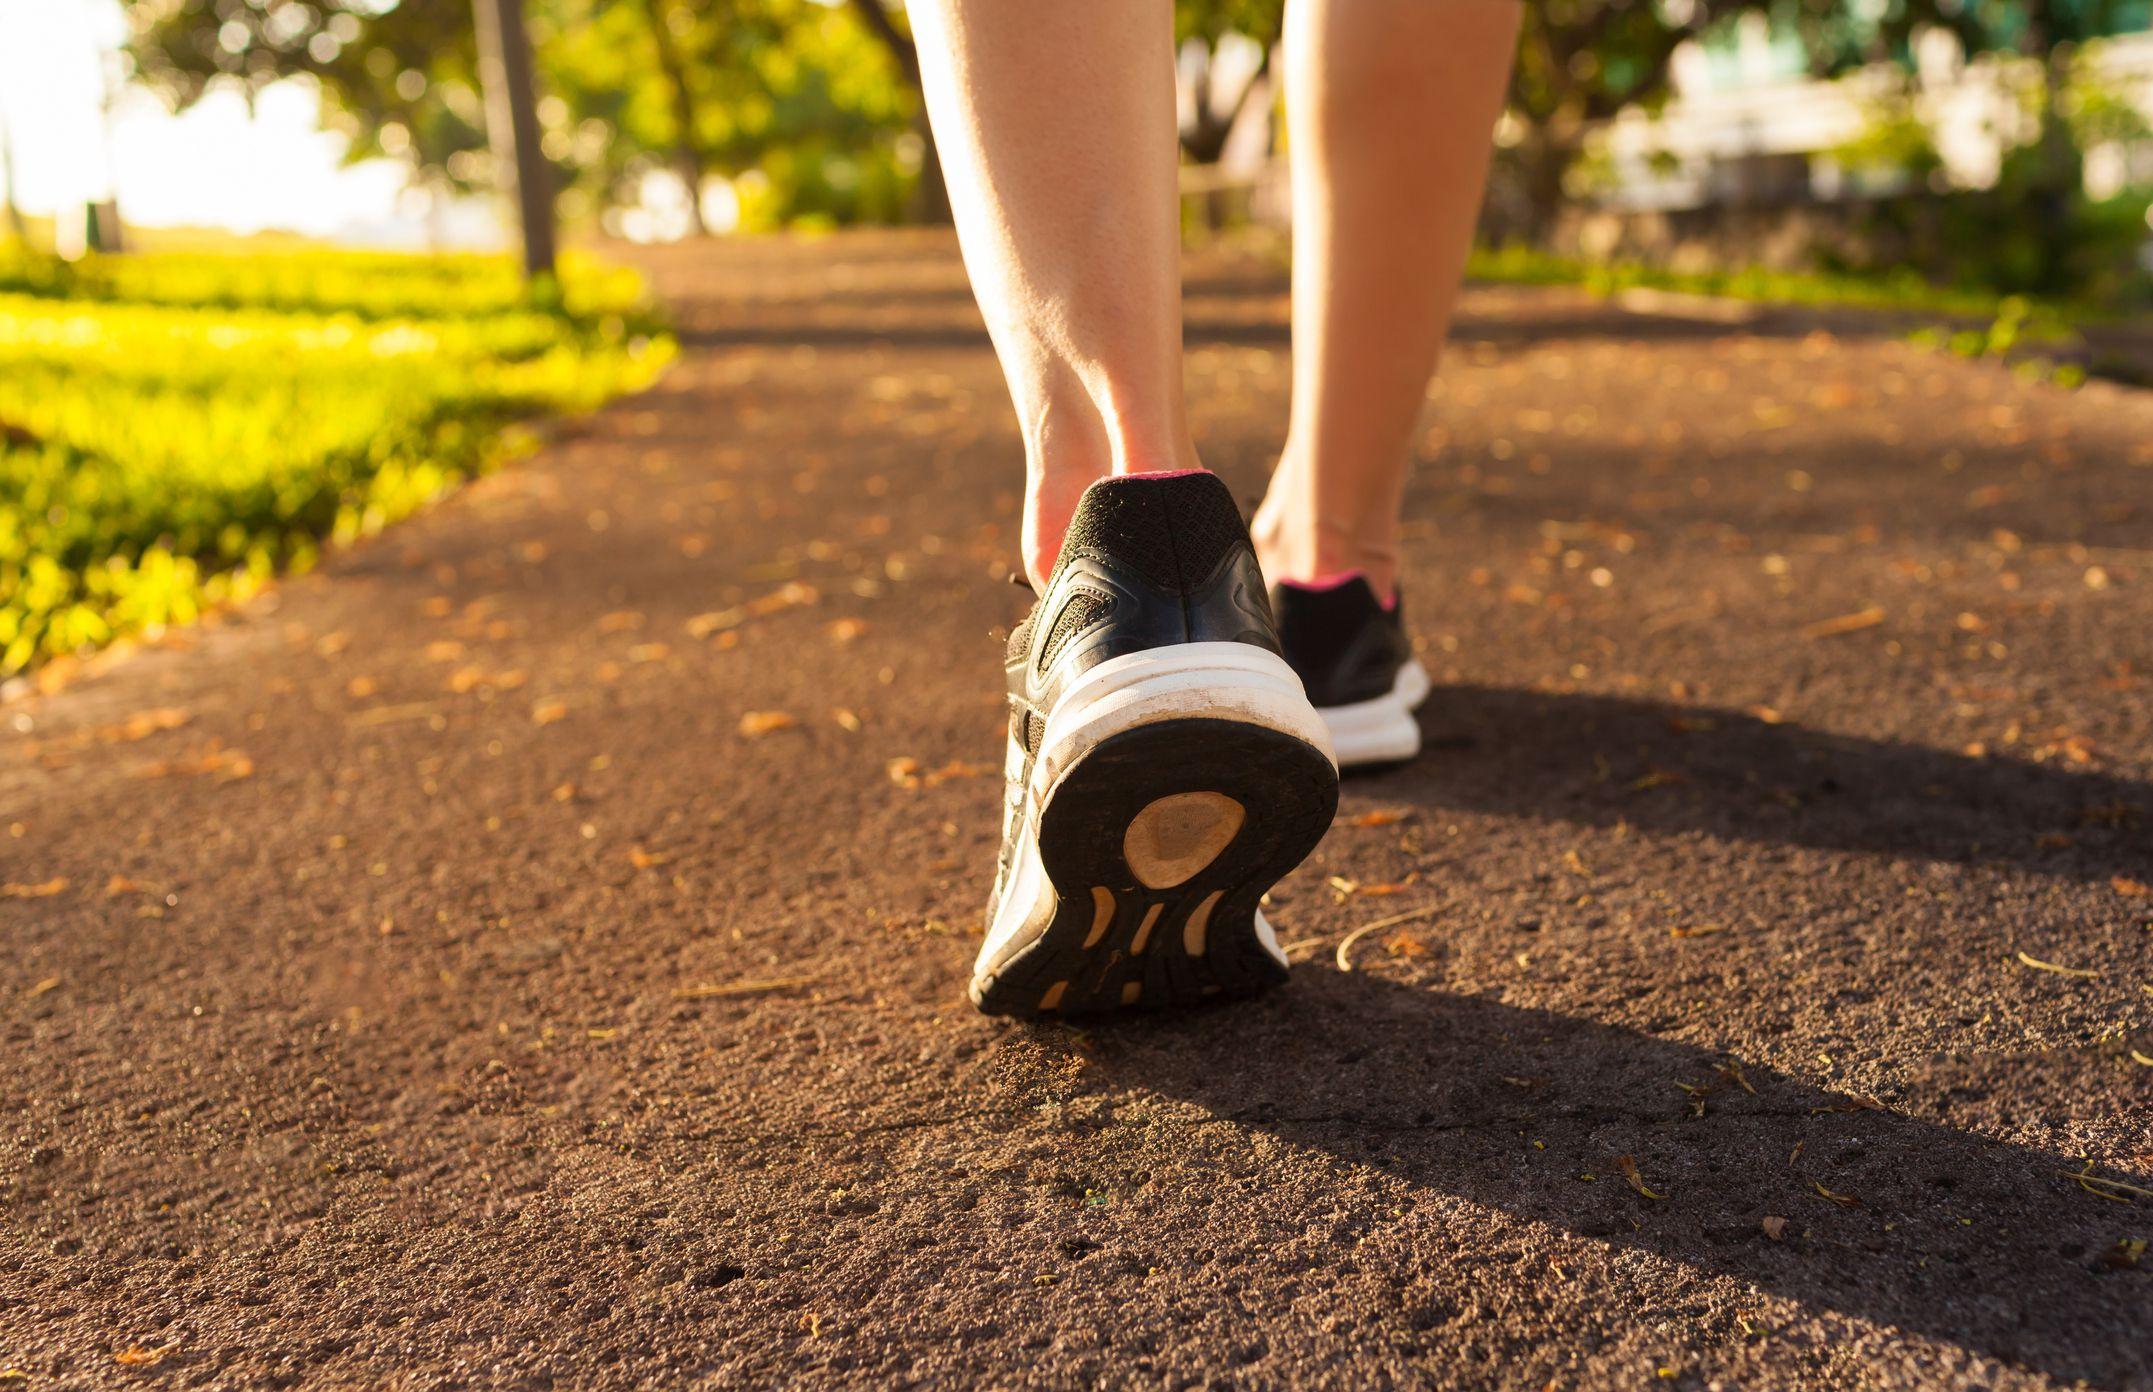 7 Incredible Health Benefits of Walking 30 Minutes a Day